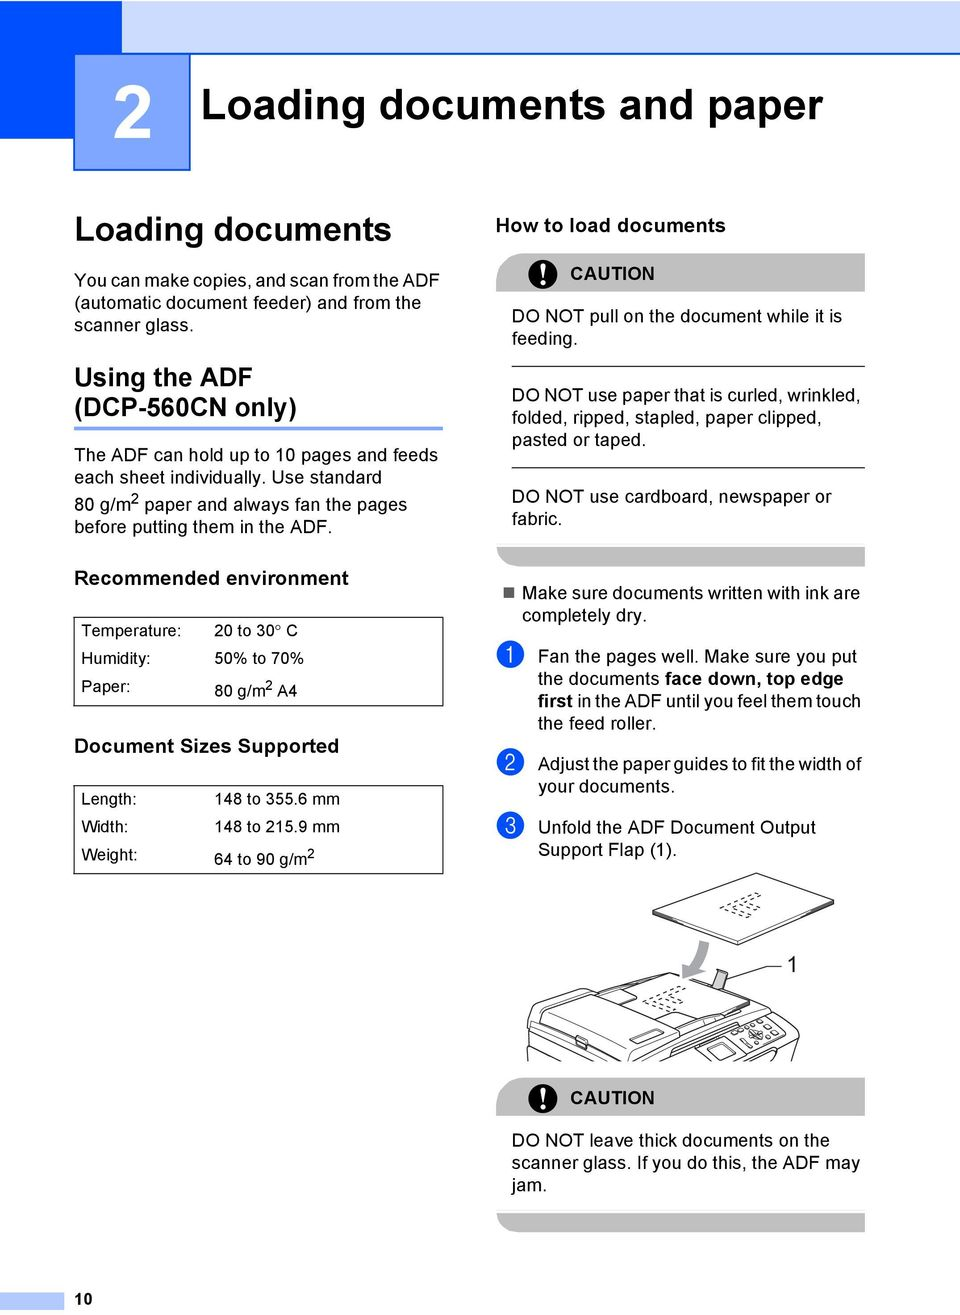 How to load documents 2 CAUTION DO NOT pull on the document while it is feeding. DO NOT use paper that is curled, wrinkled, folded, ripped, stapled, paper clipped, pasted or taped.